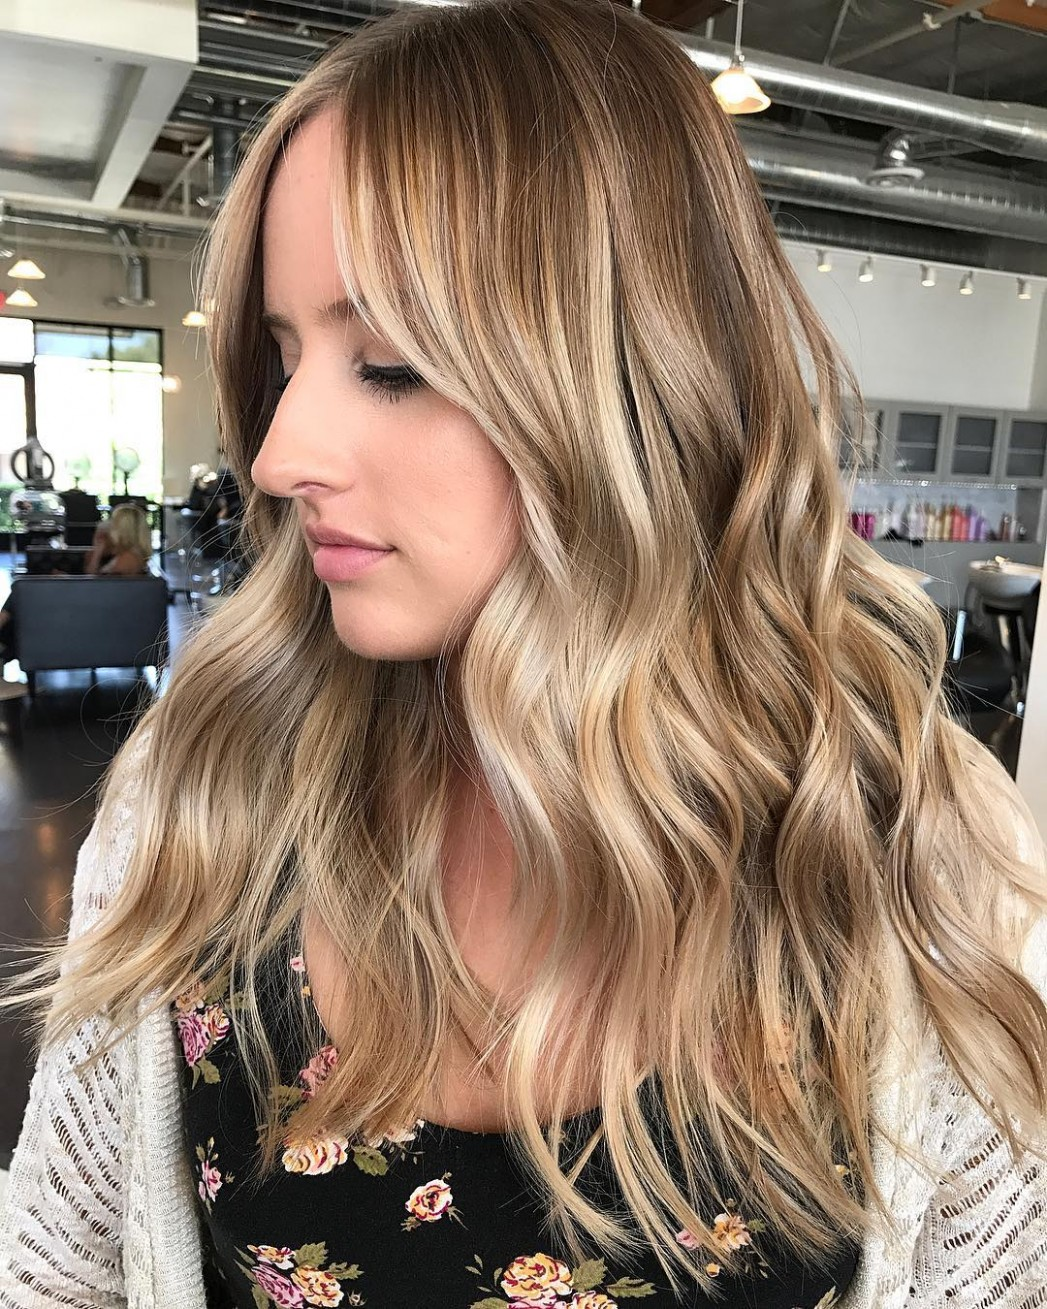 What are the best hairstyles for big noses? - Hair Adviser